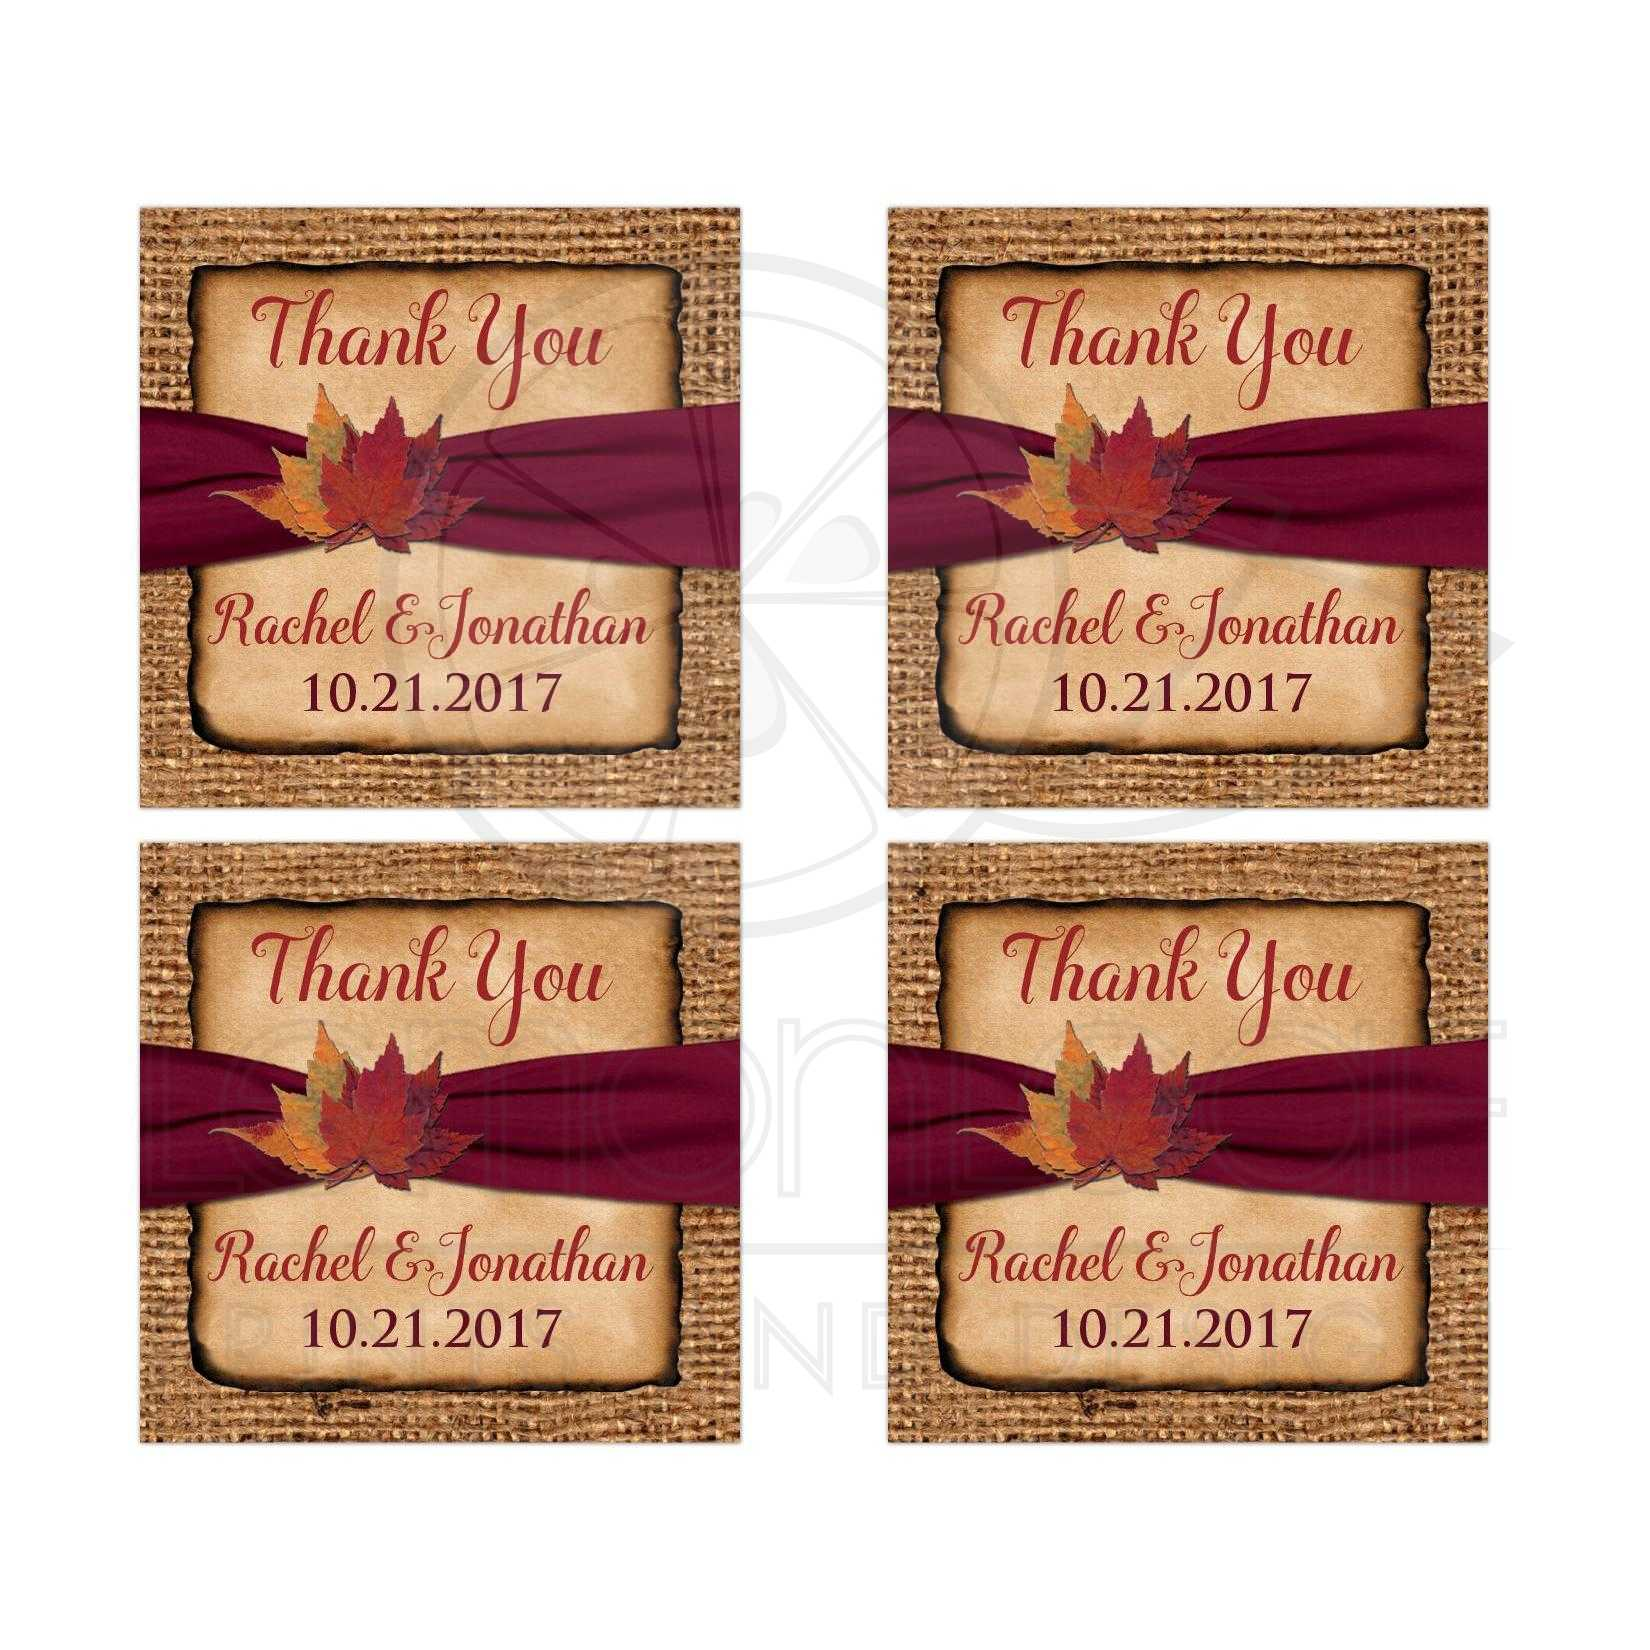 Personalized 2 Square Rustic Burlap Wedding Favor Stickers With A Burgundy Colored Ribbon